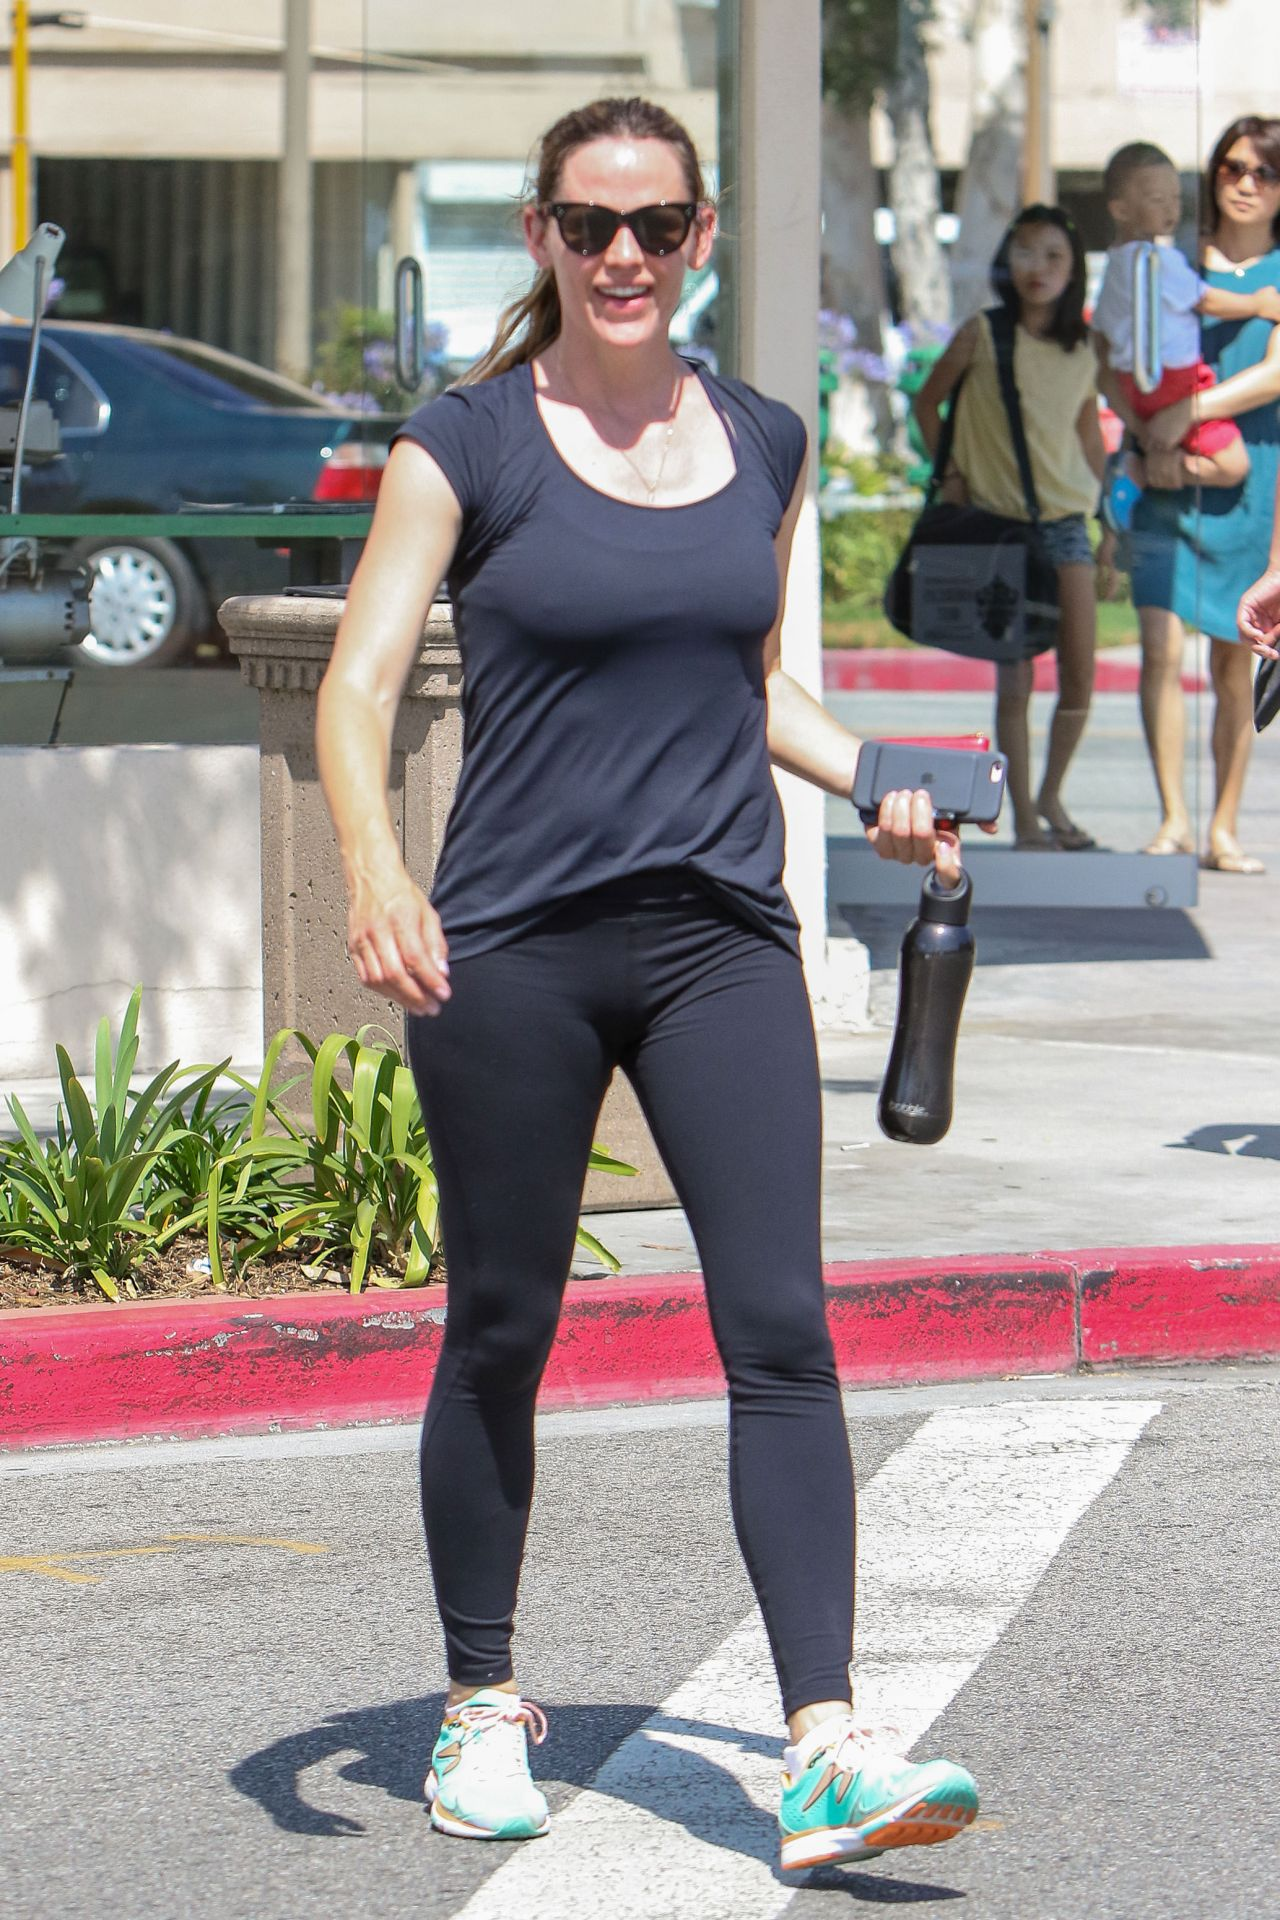 Jennifer Garner In Tights - Leaving A Gym In Los Angeles 6222016-9595